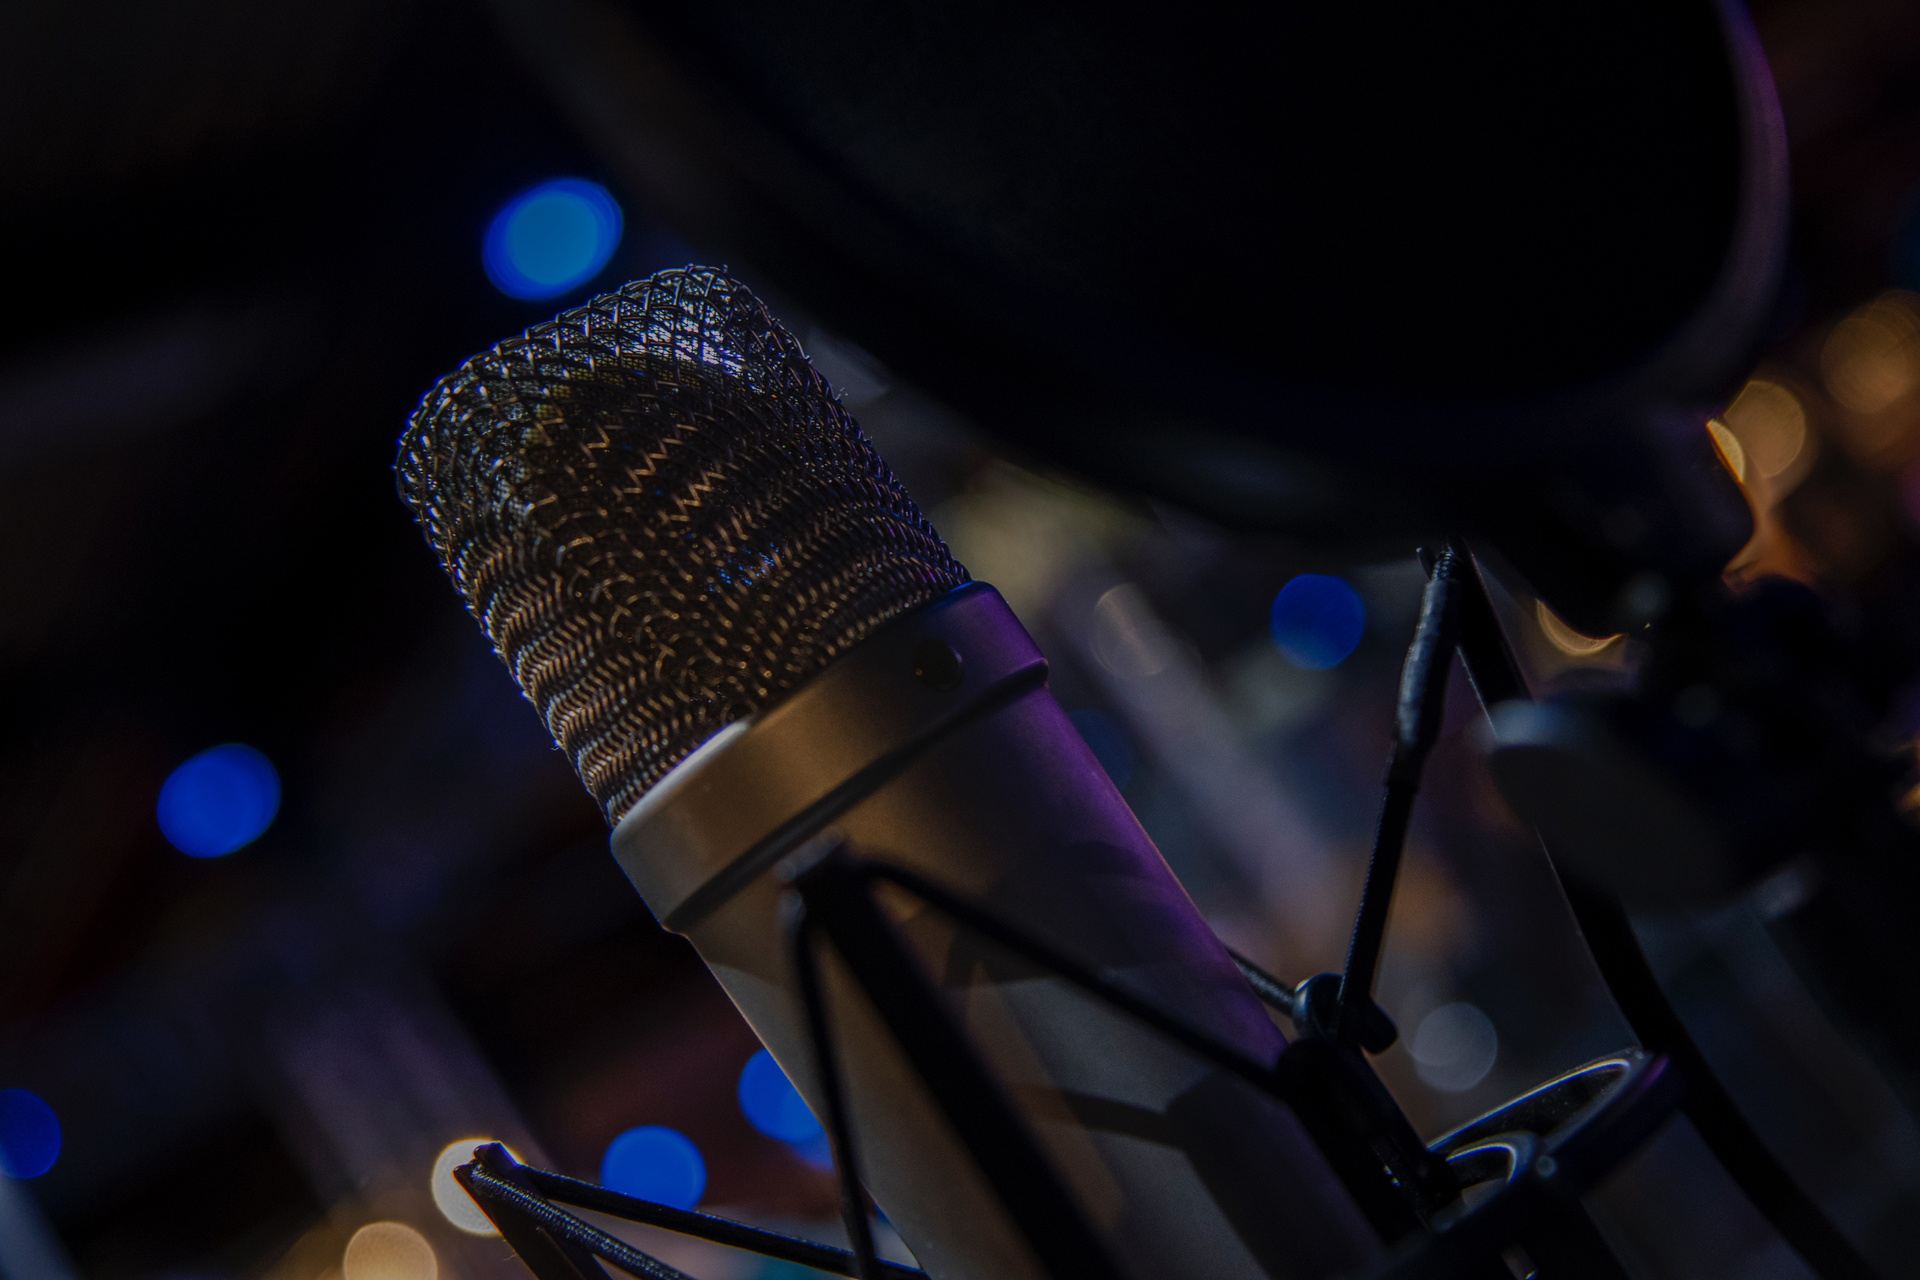 Voiceover services: How do you choose the right voice to